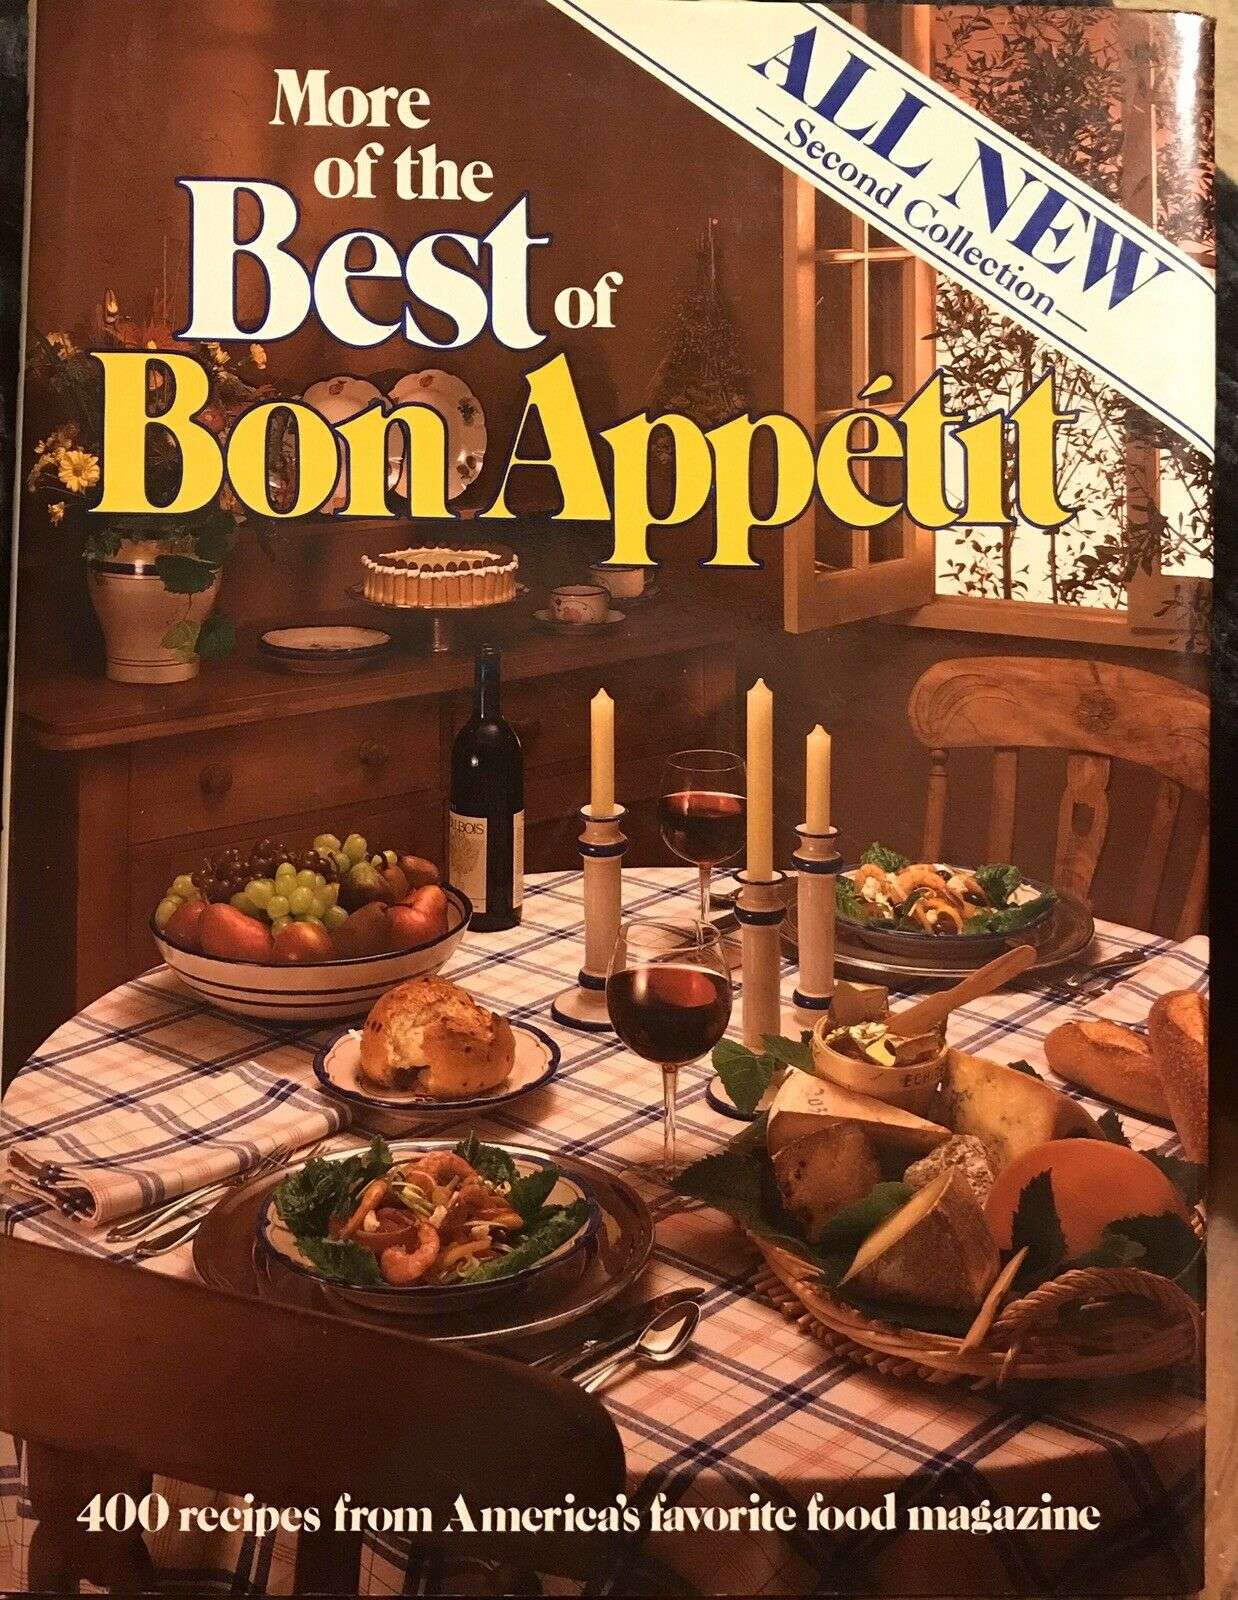 VINTAGE BEST OF BON APPETIT MAGAZINE COOKBOOK 400 RECIPES PHOTOS FIRST EDITION |